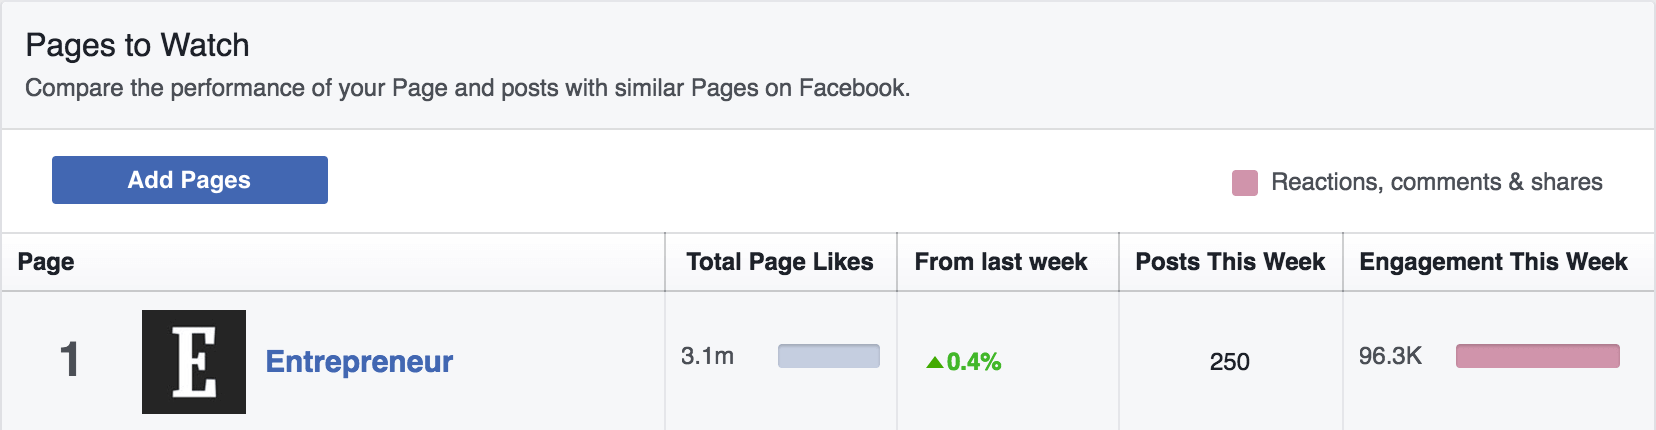 Learning from your competitors using Facebook Insights > Pages to Watch